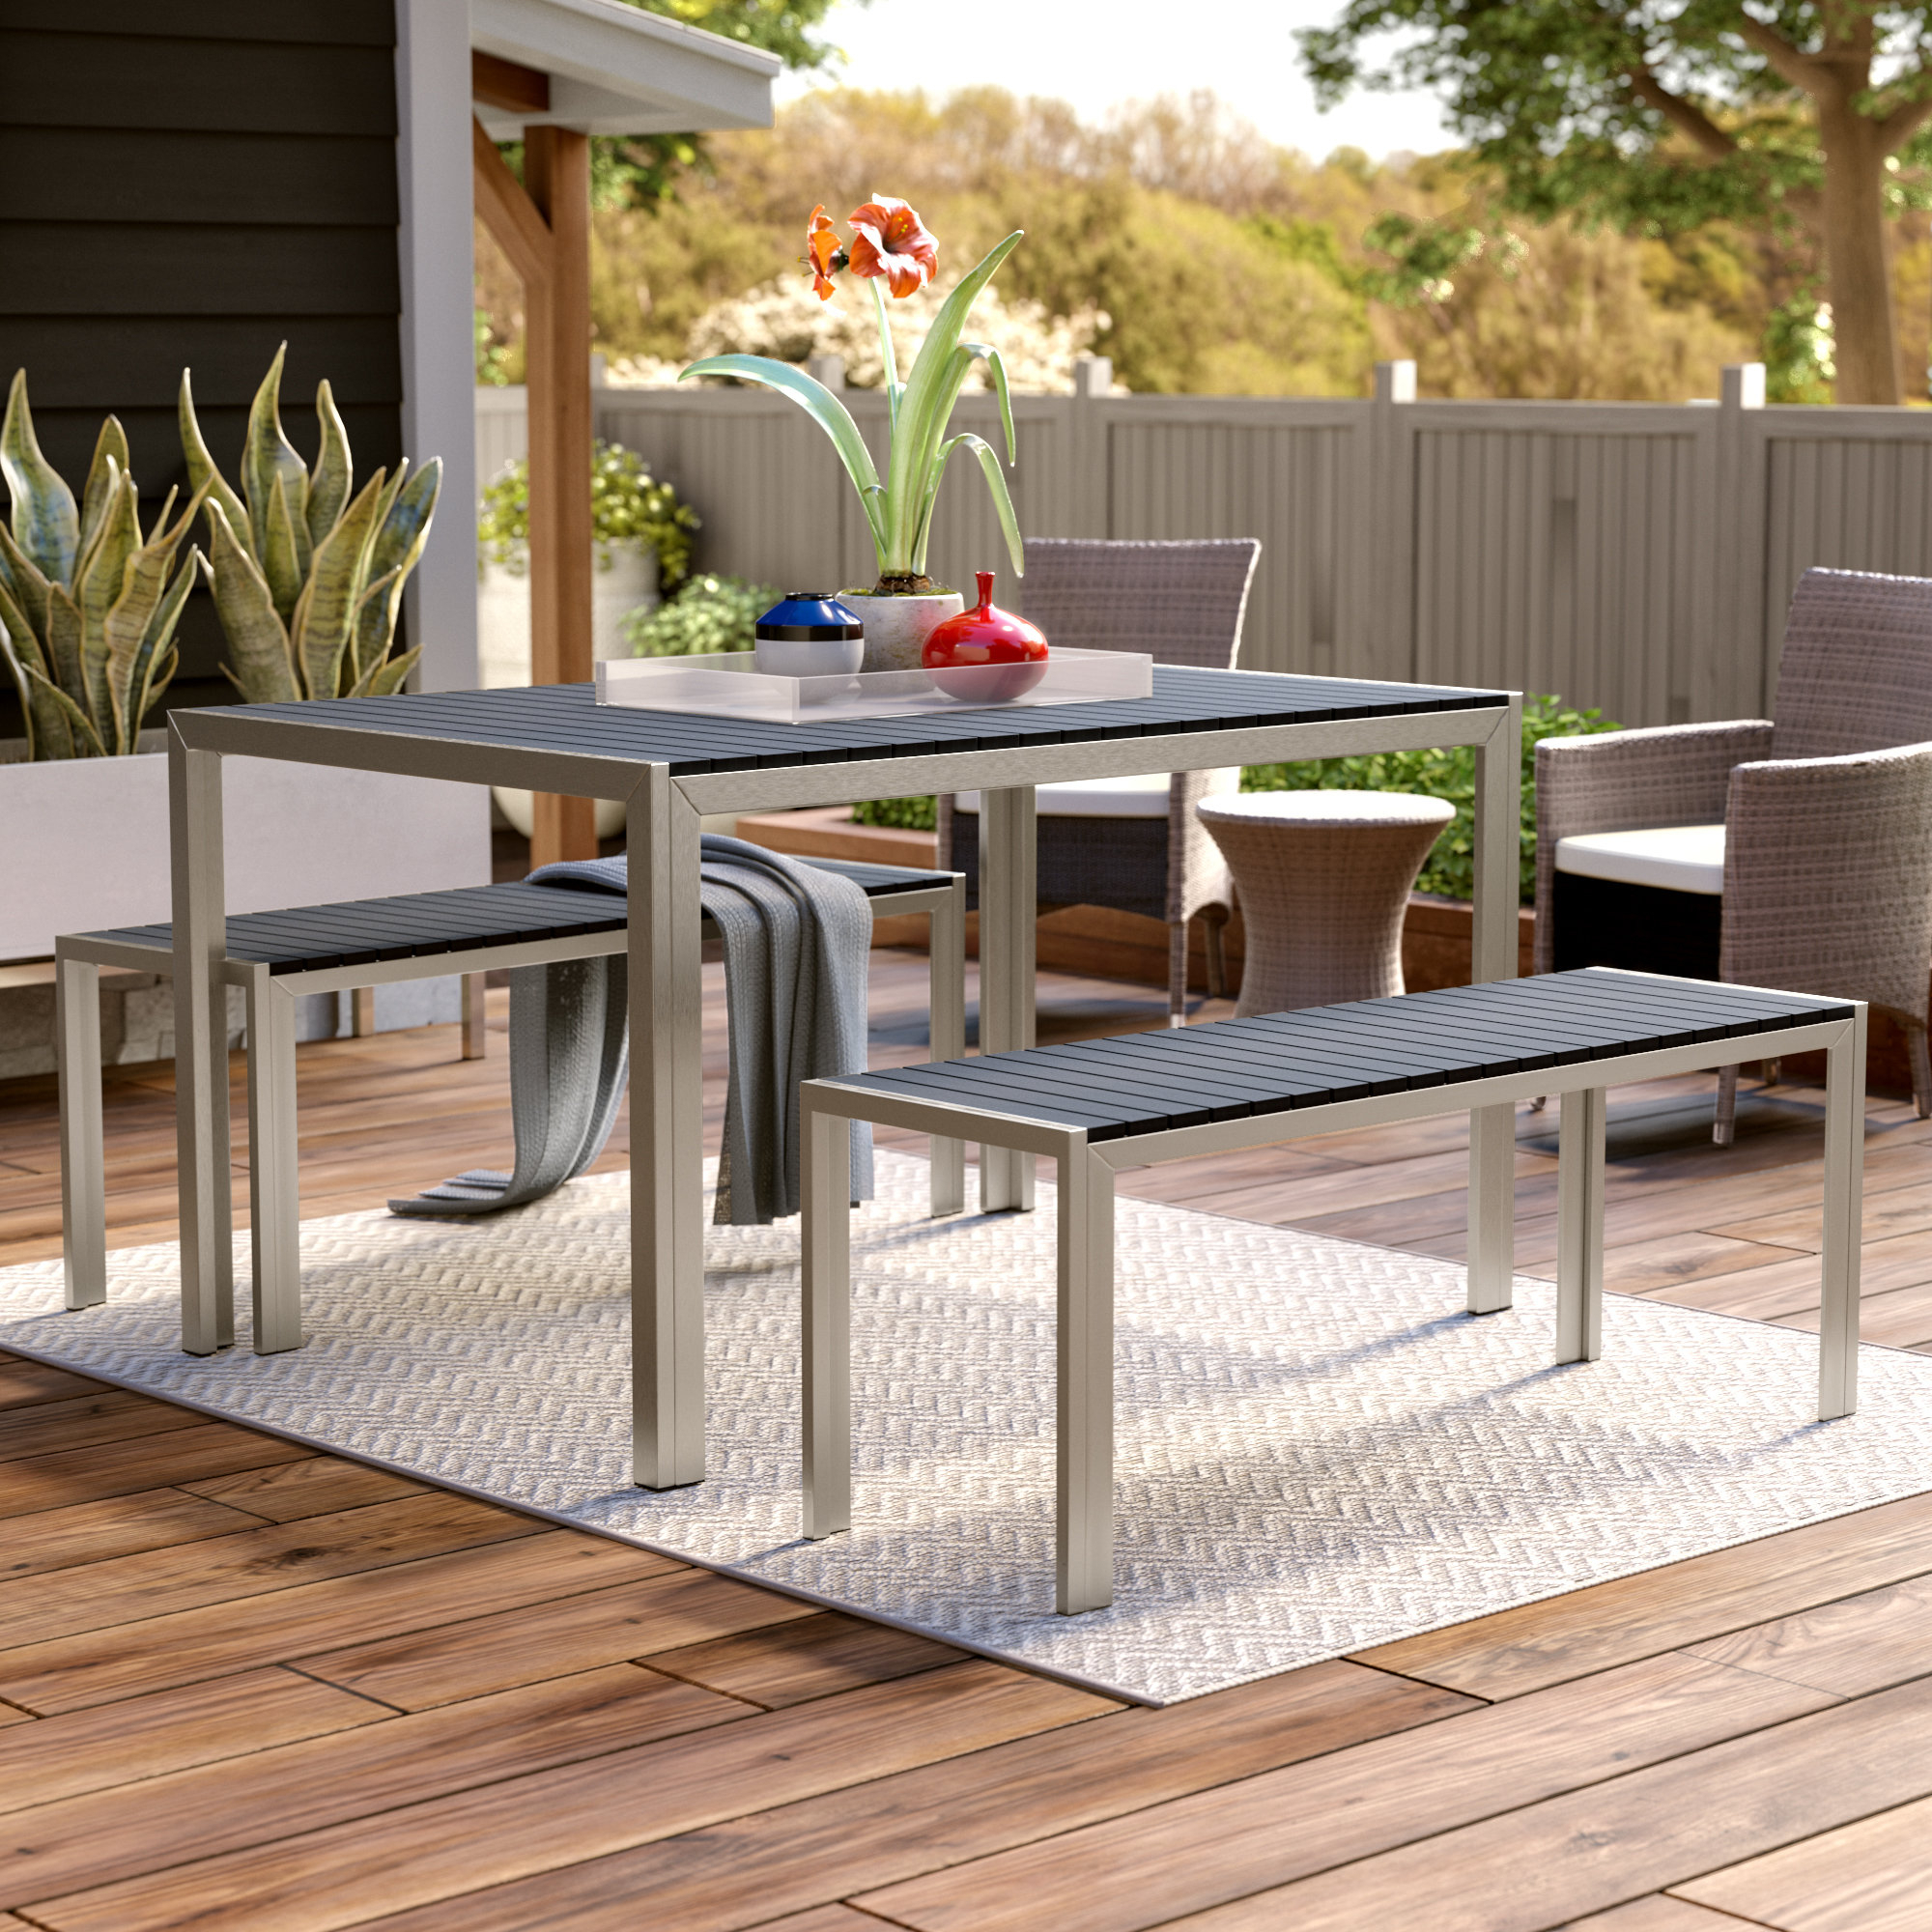 3 Piece Dining Sets Inside 2018 Serpa 3 Piece Dining Set (View 2 of 20)